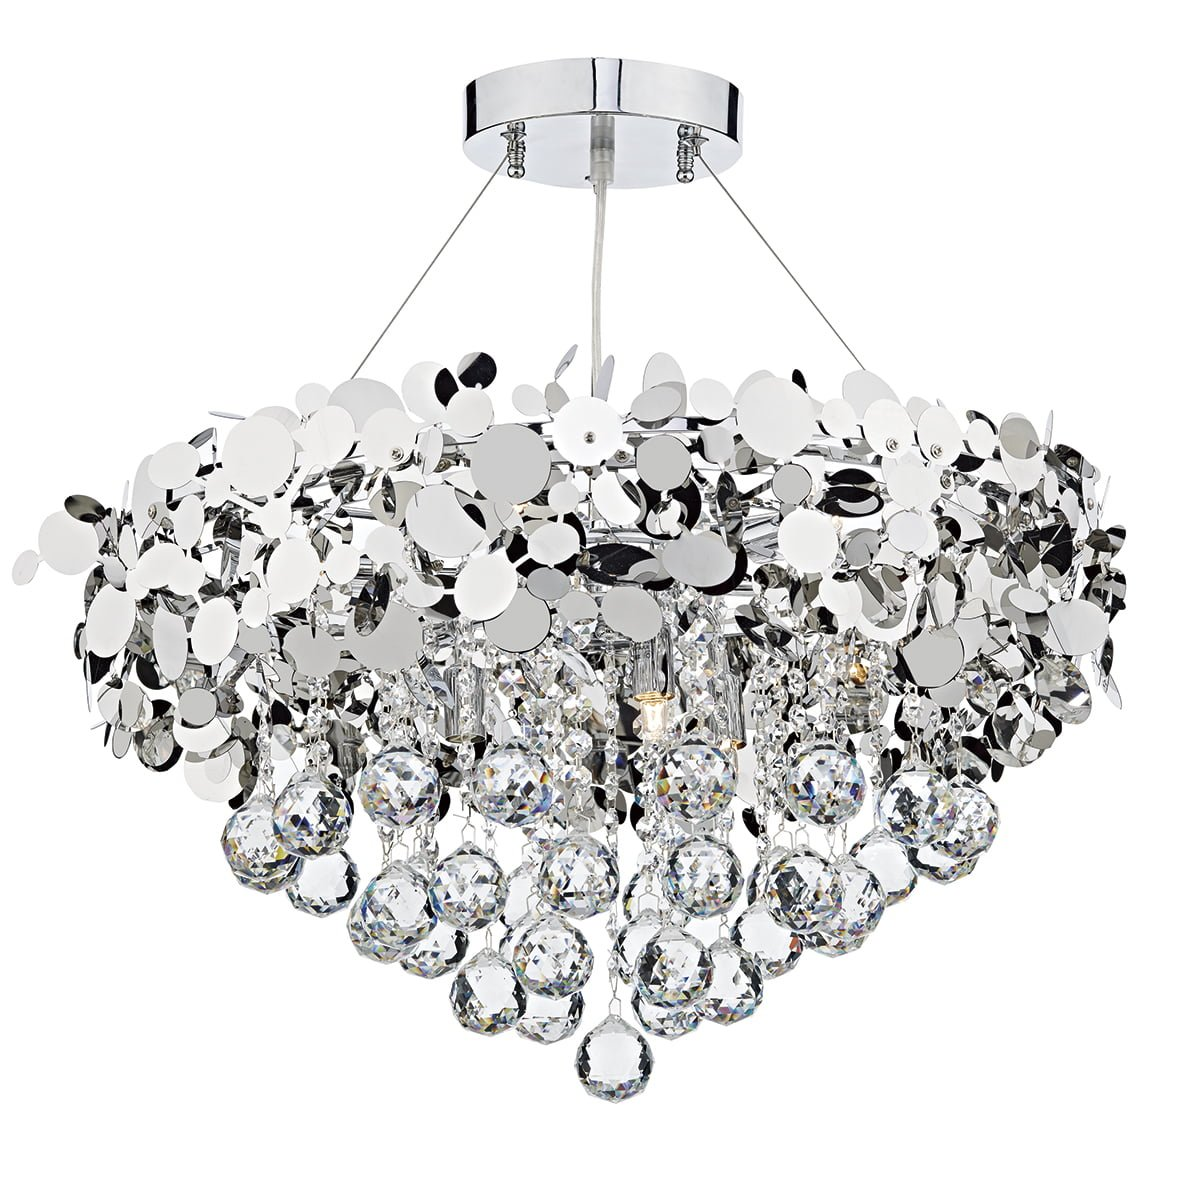 Dar LUX1350 Luxor 9 Light Pendant in Polished Chrome